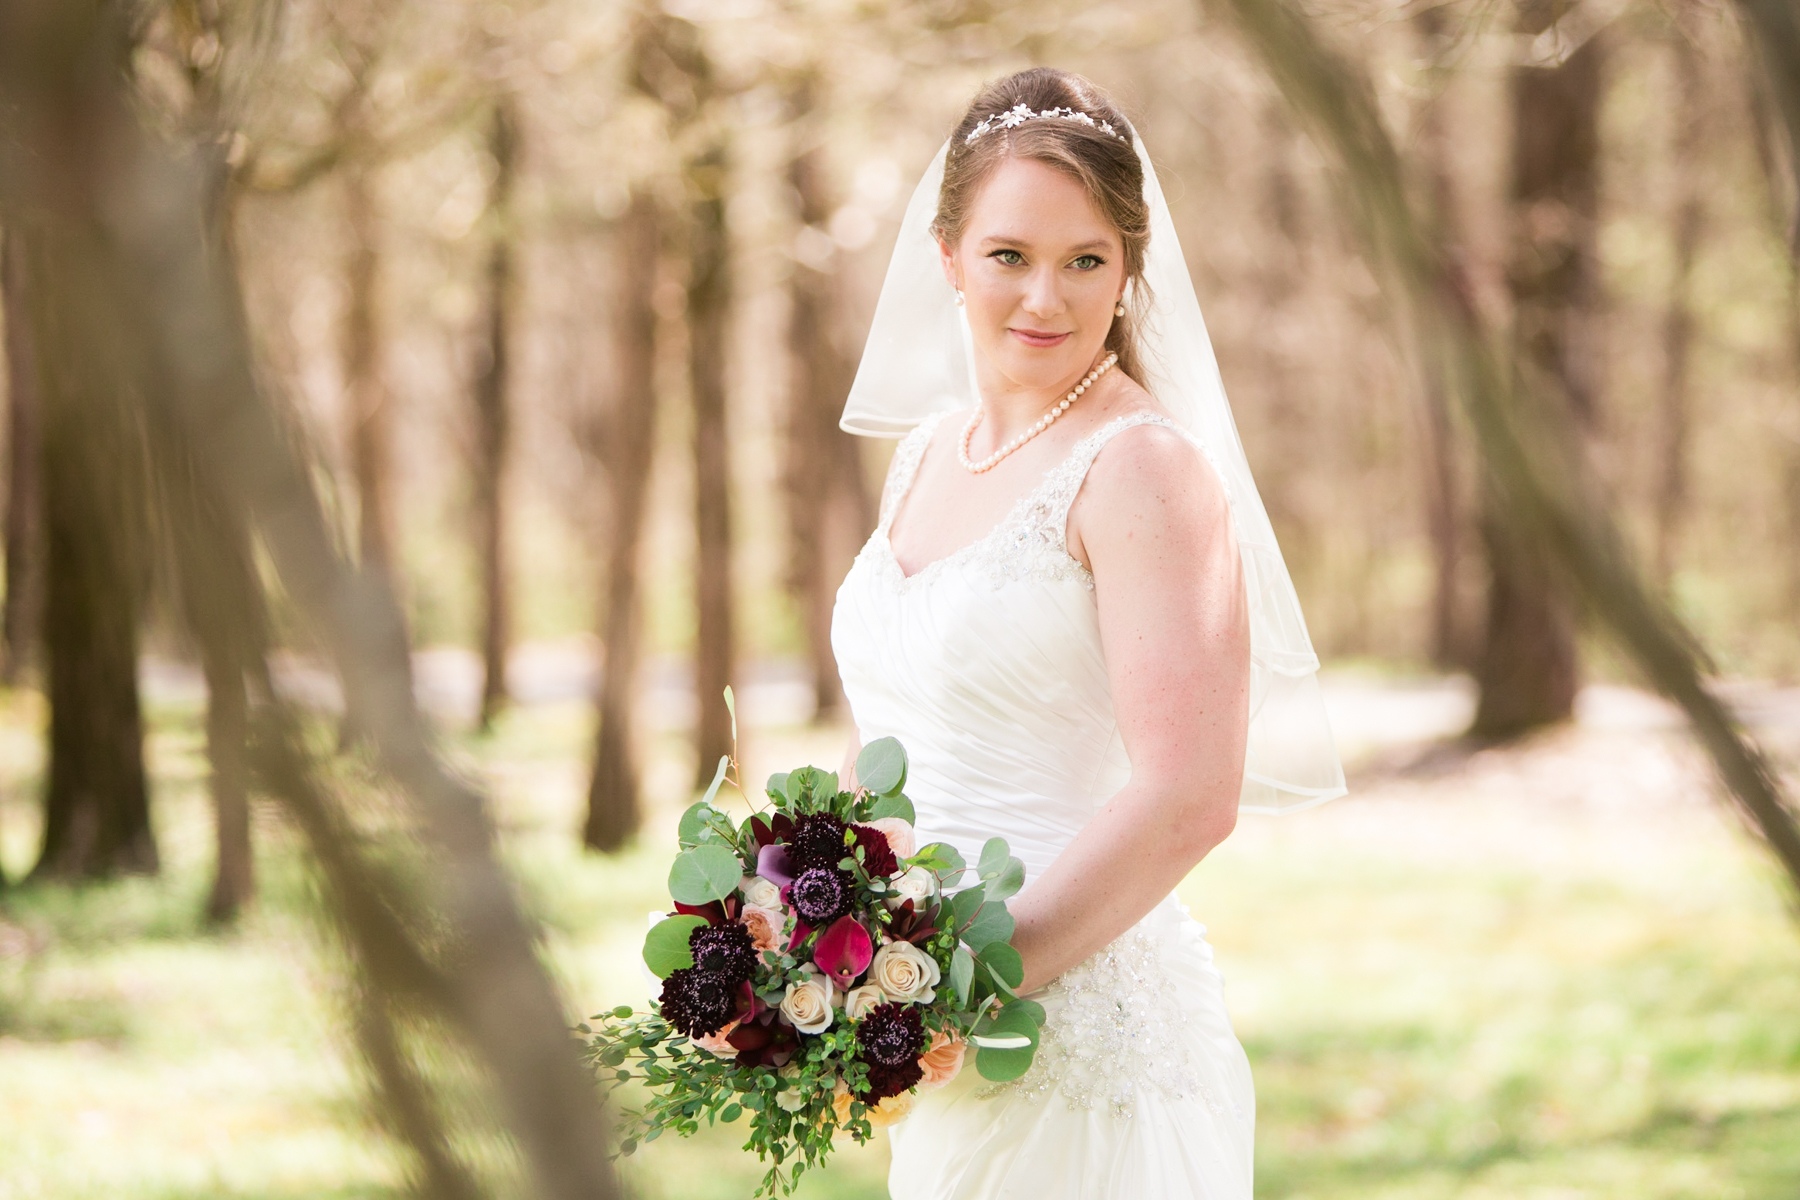 bridal-portrait-nashville-wedding-cedars-of-lebanon.jpg